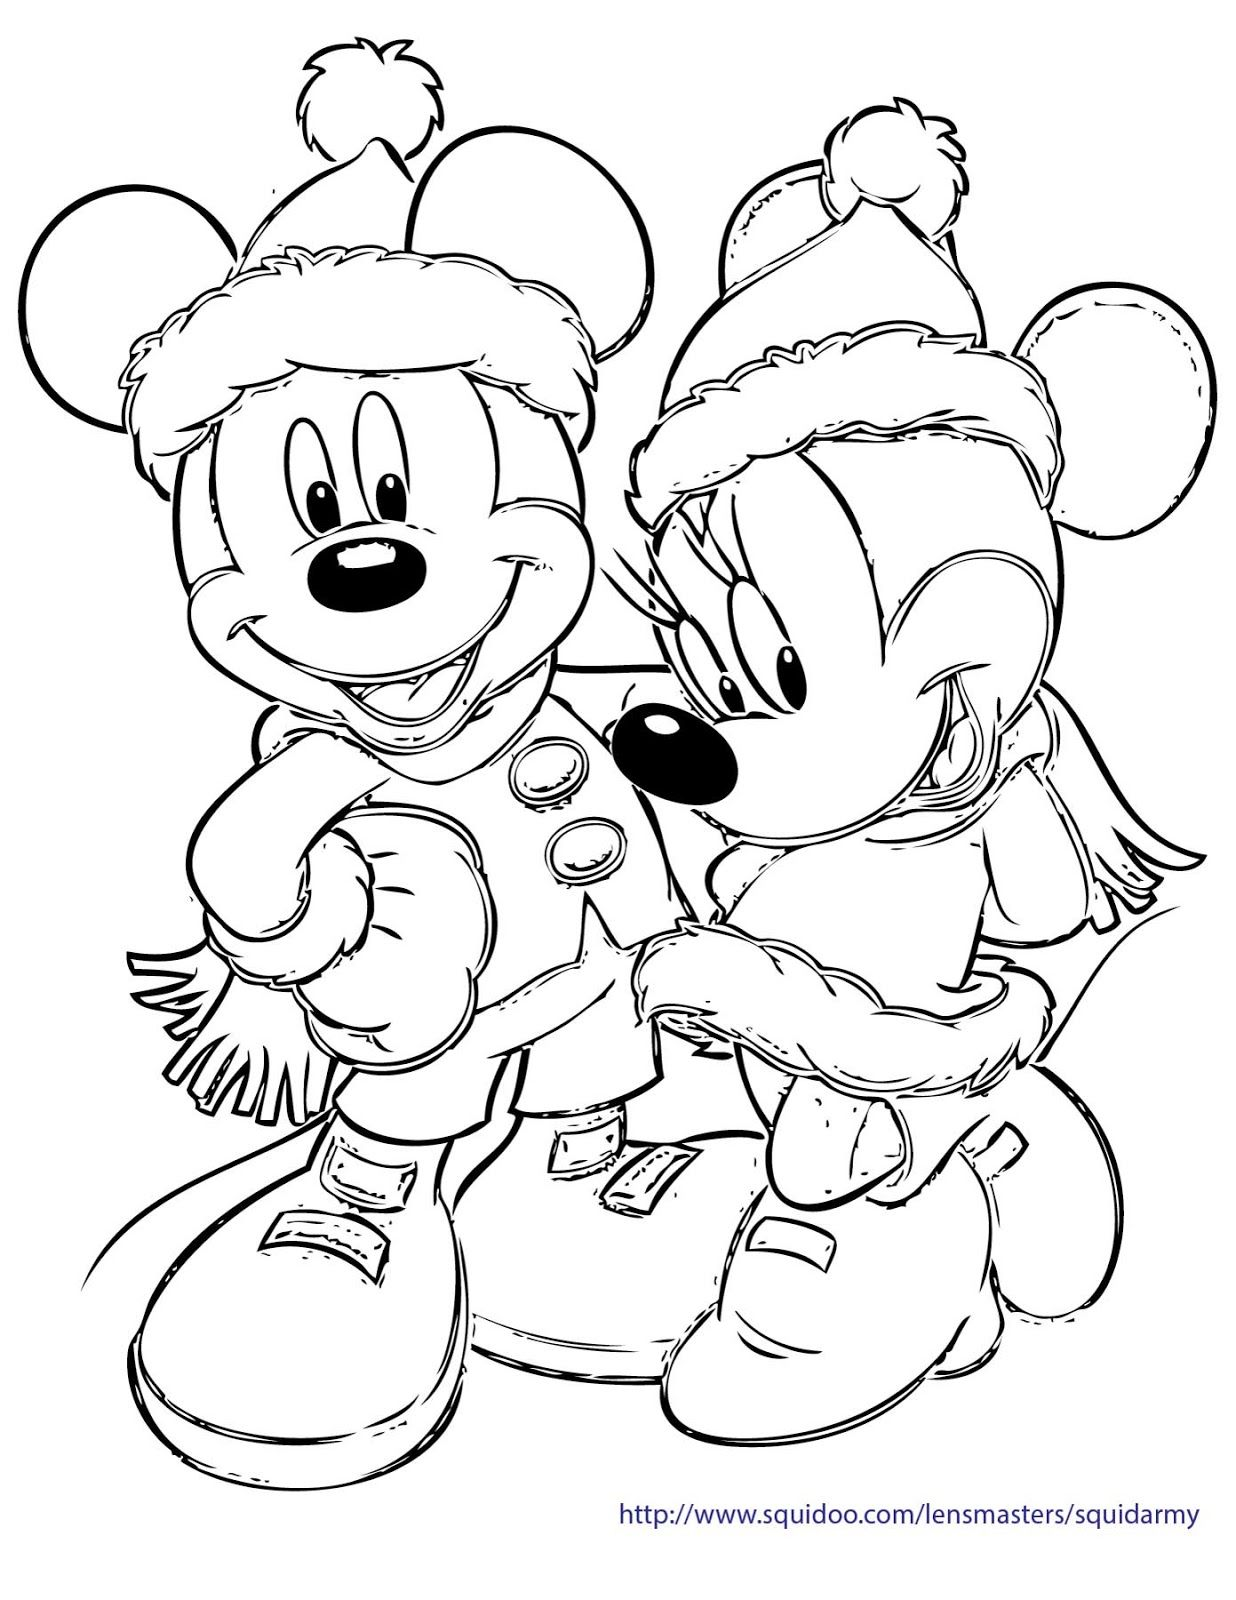 Christmas Mouse Coloring Pages Printable Mickey And Minnie Mouse Christma Free Christmas Coloring Pages Mickey Mouse Coloring Pages Minnie Mouse Coloring Pages